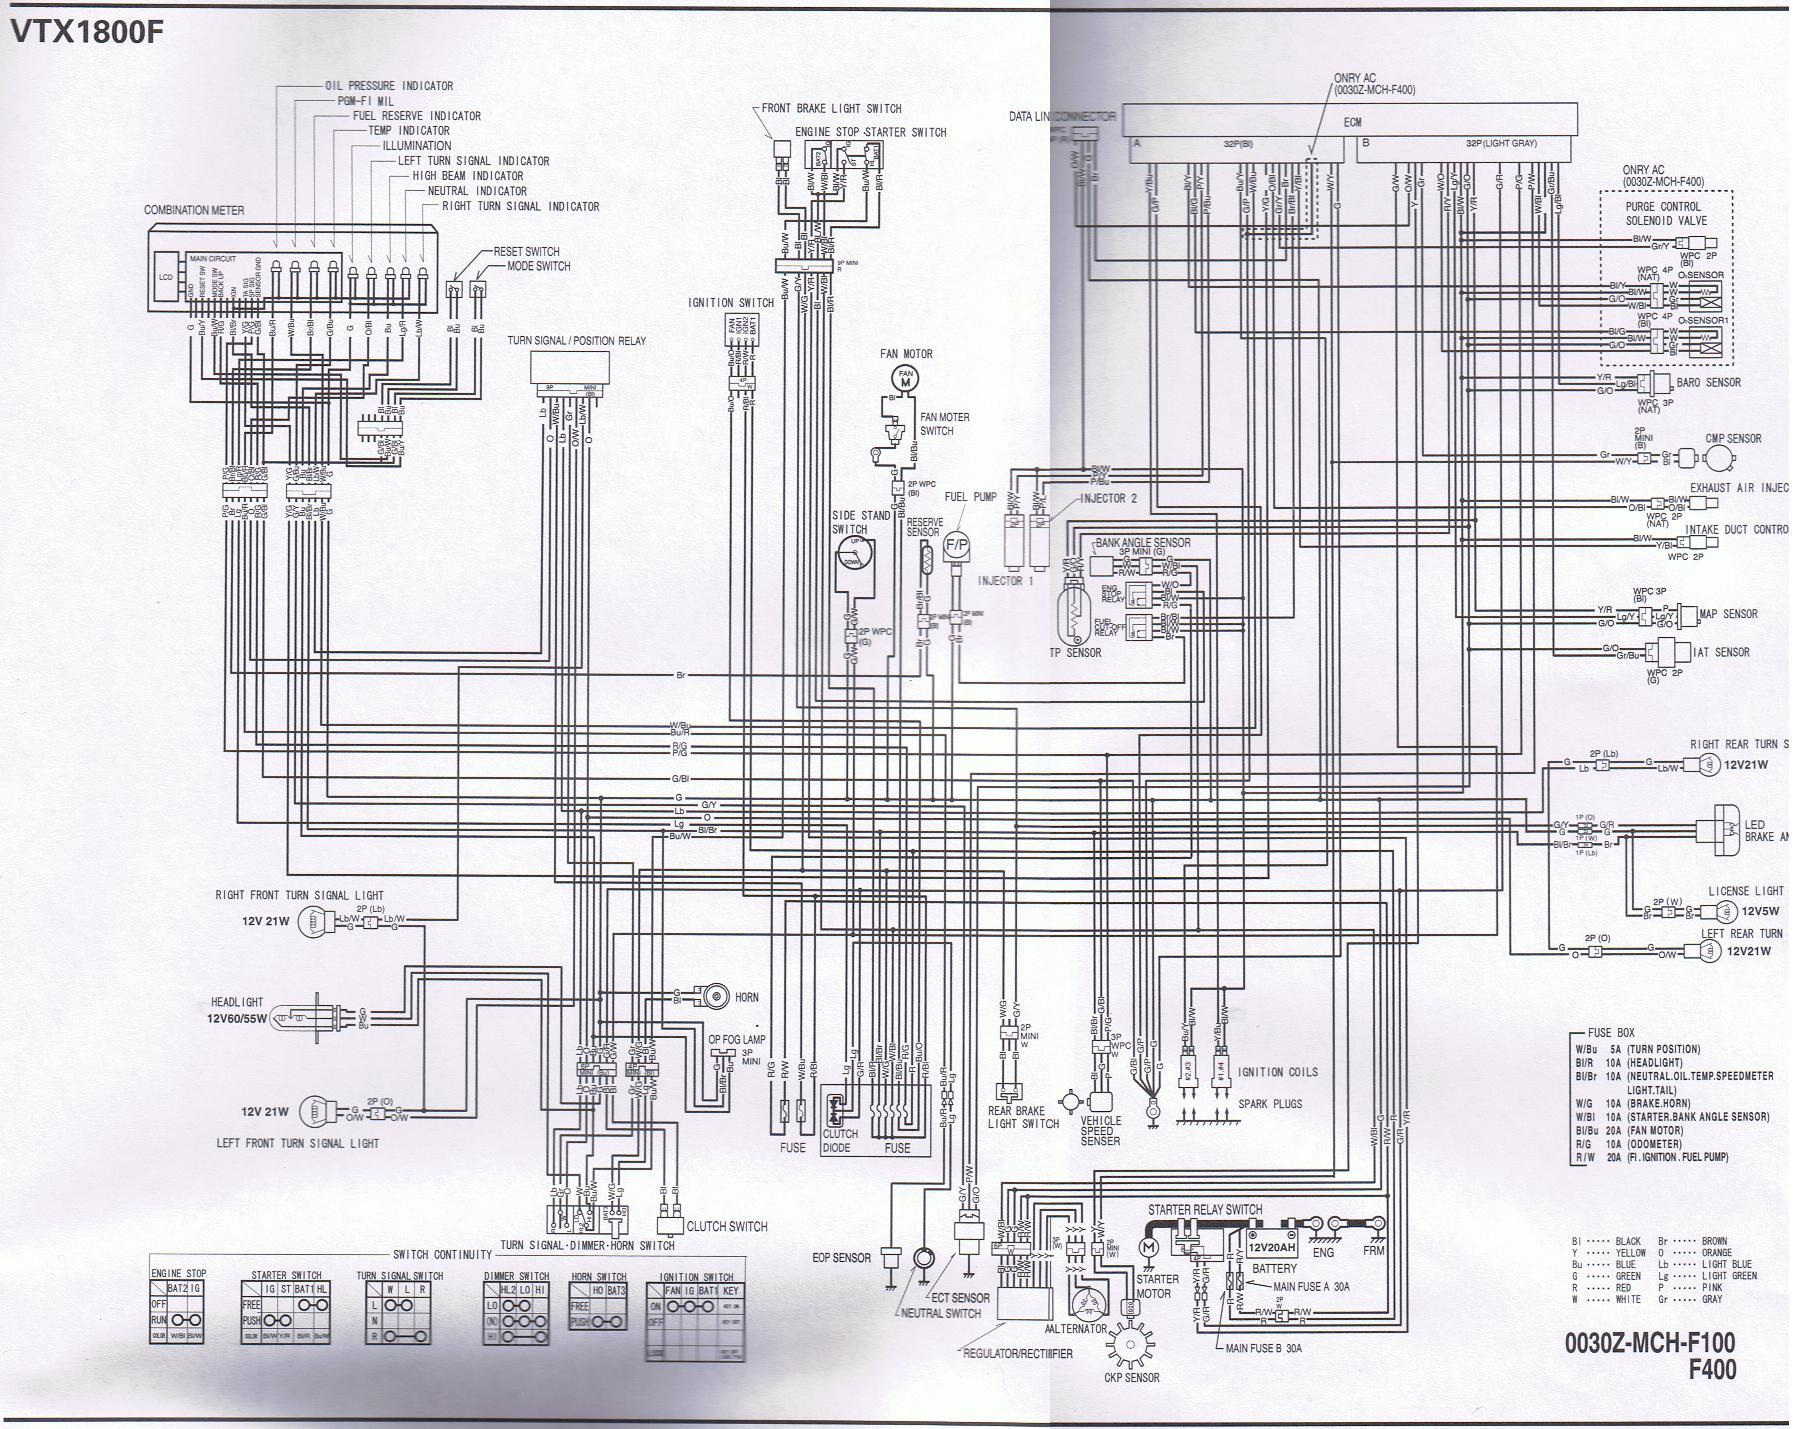 05+_VTX1800_F_schematic motorcycle wire schematics bareass choppers motorcycle tech pages on honda vtx switchs and wiring harnesses